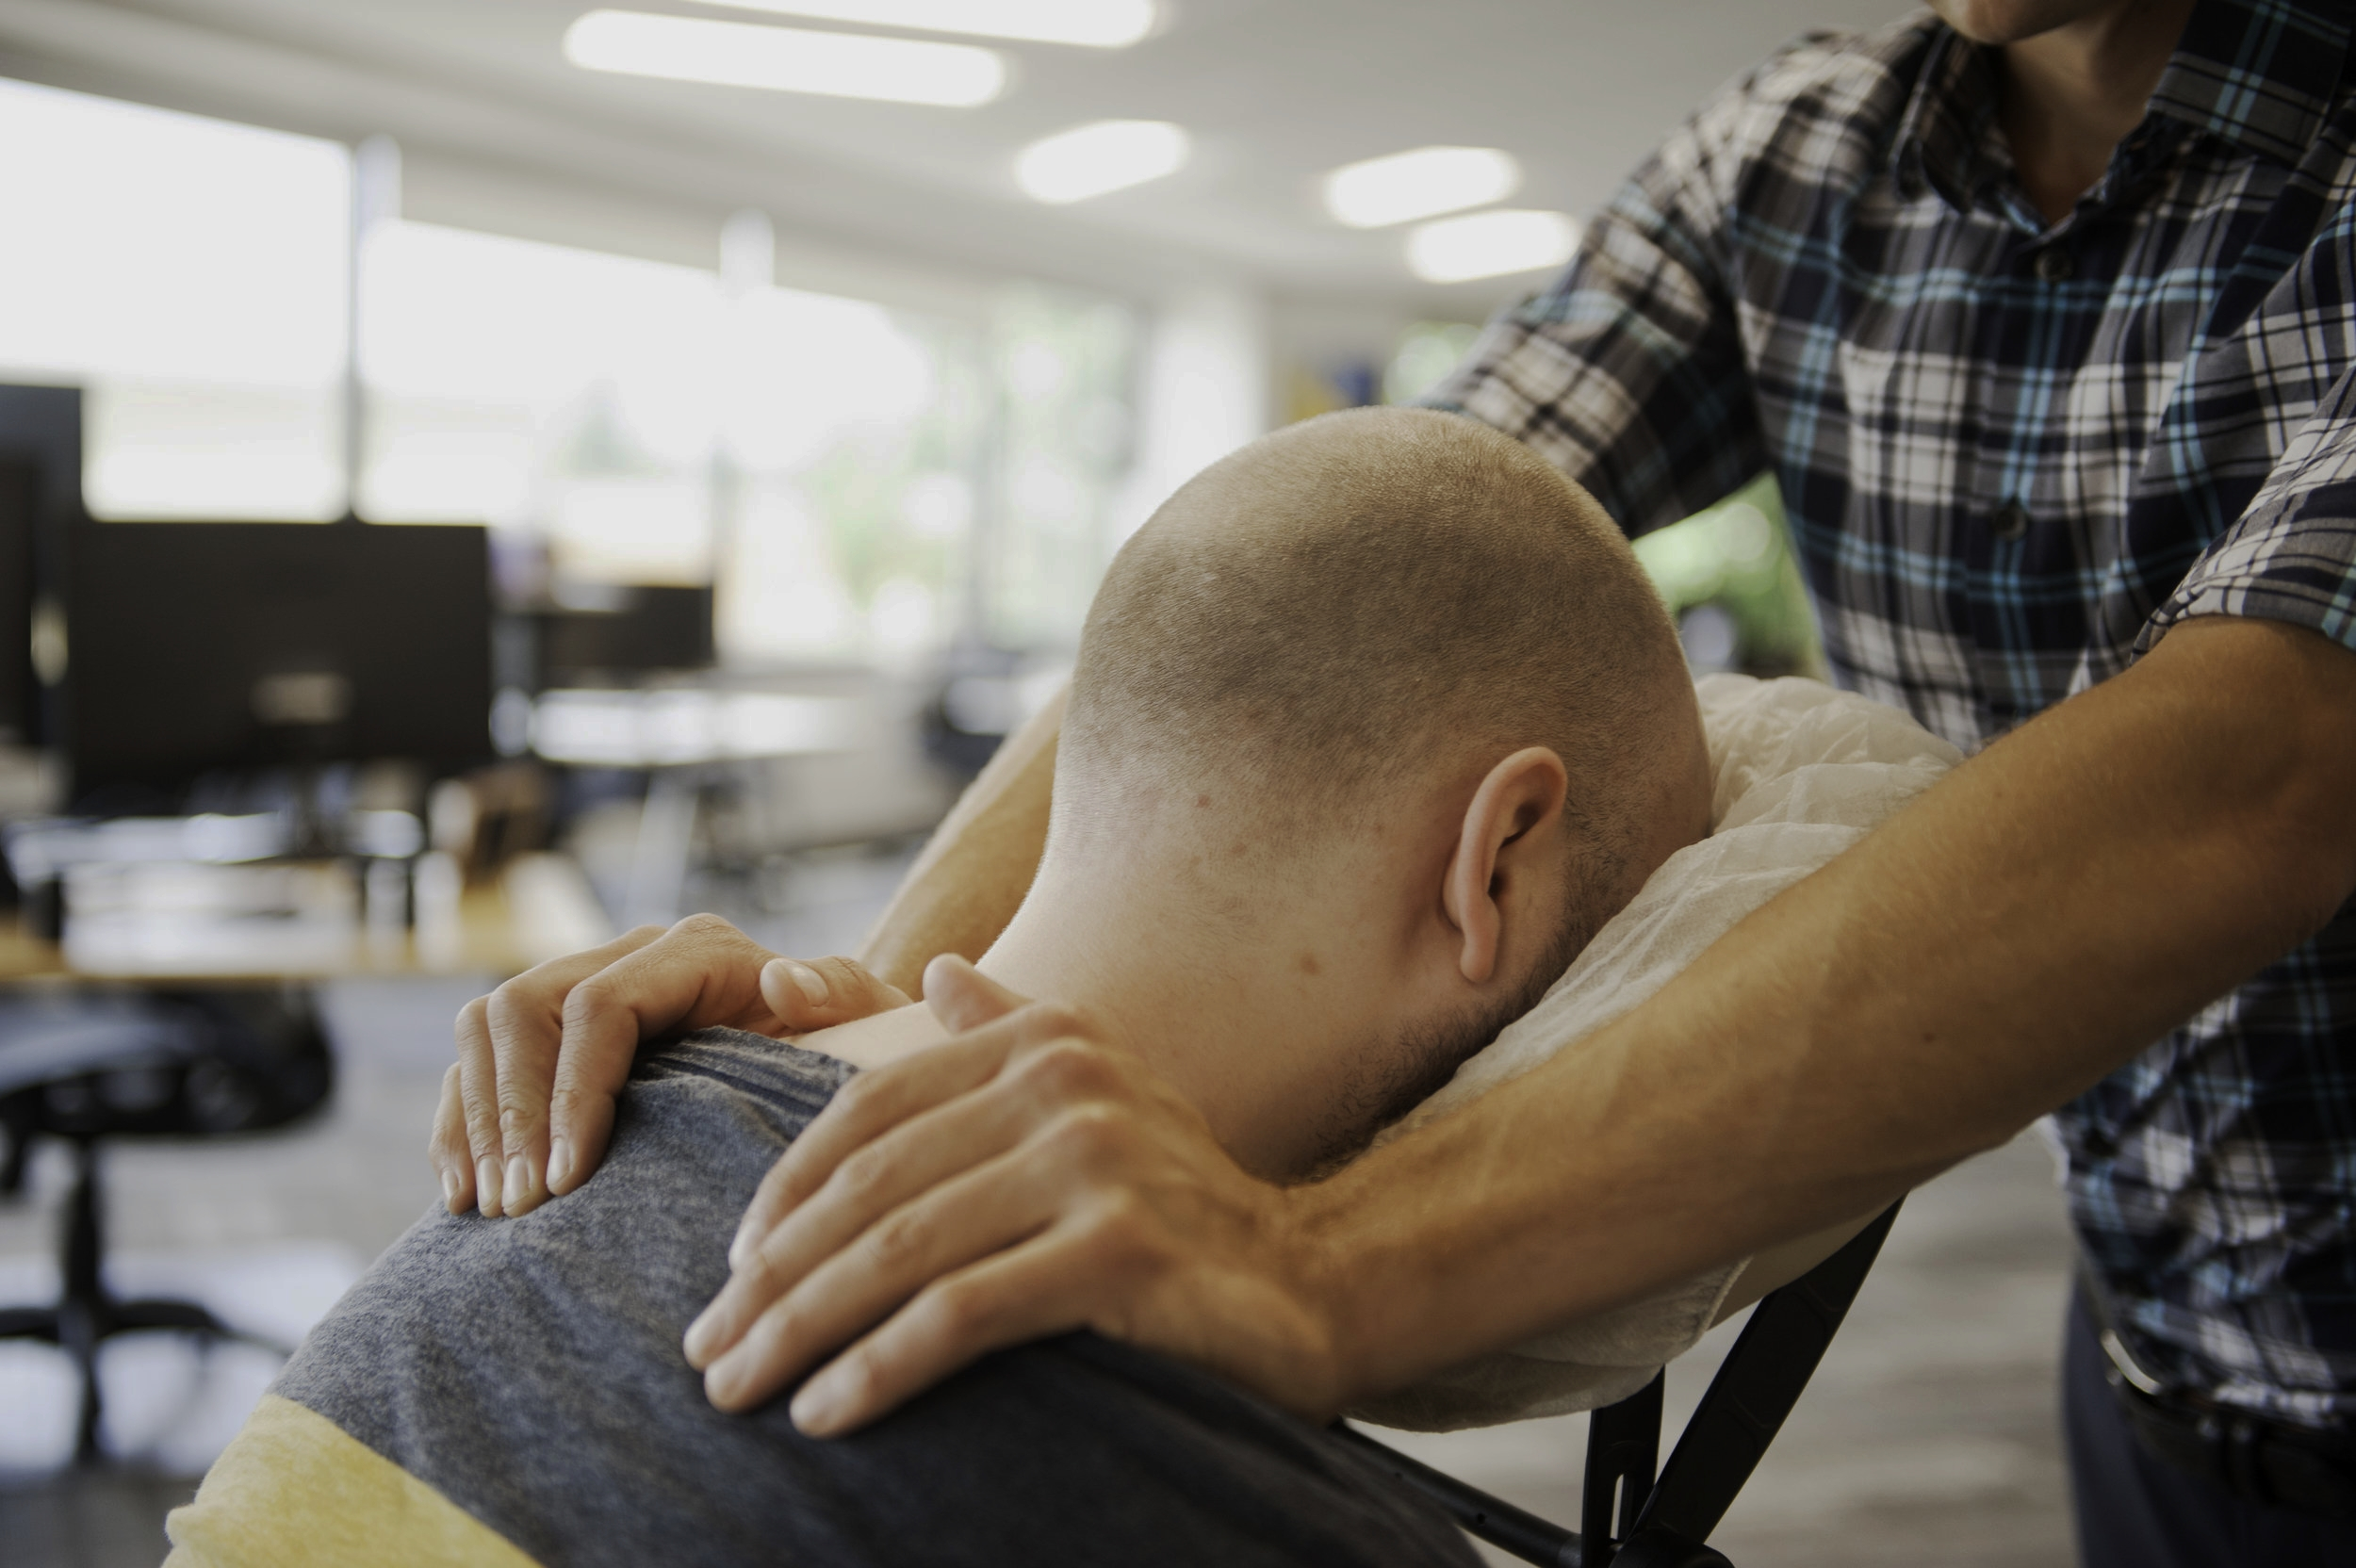 2-hour Chair Massage in your office today - Make your staff happy, improve customer ralations, build your business right!